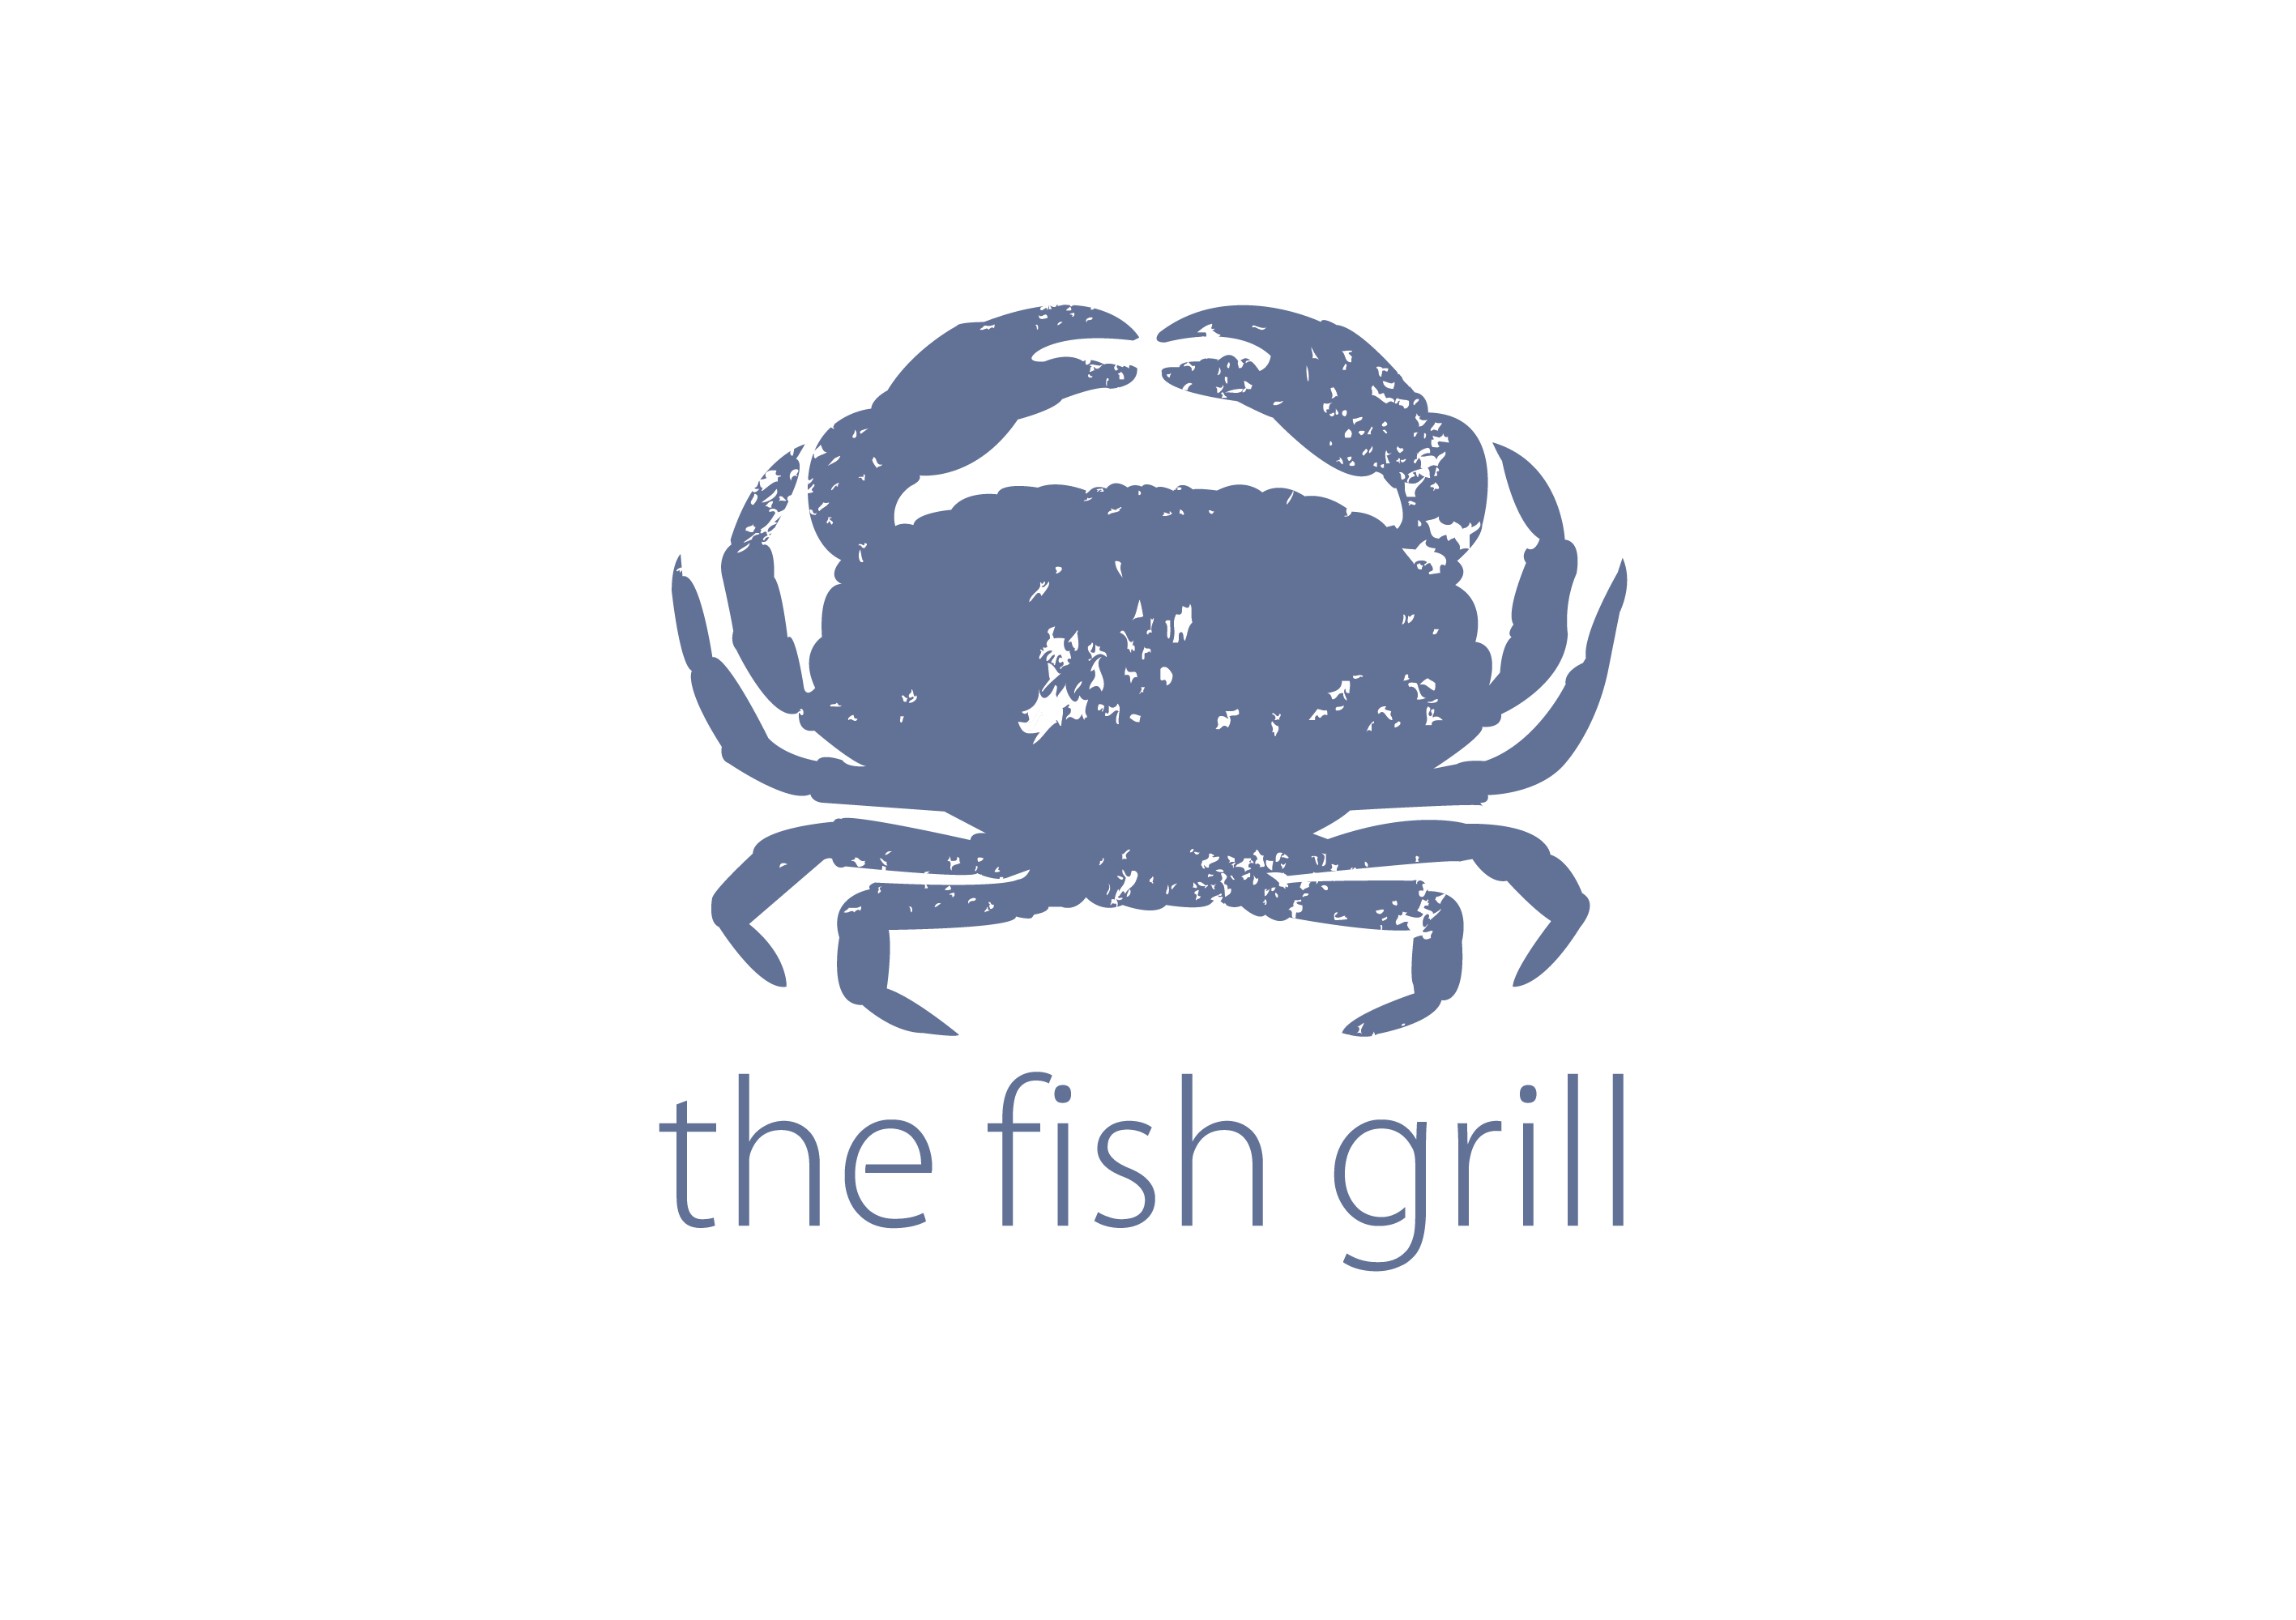 The fish grill visual identity lacon design for The fish grill